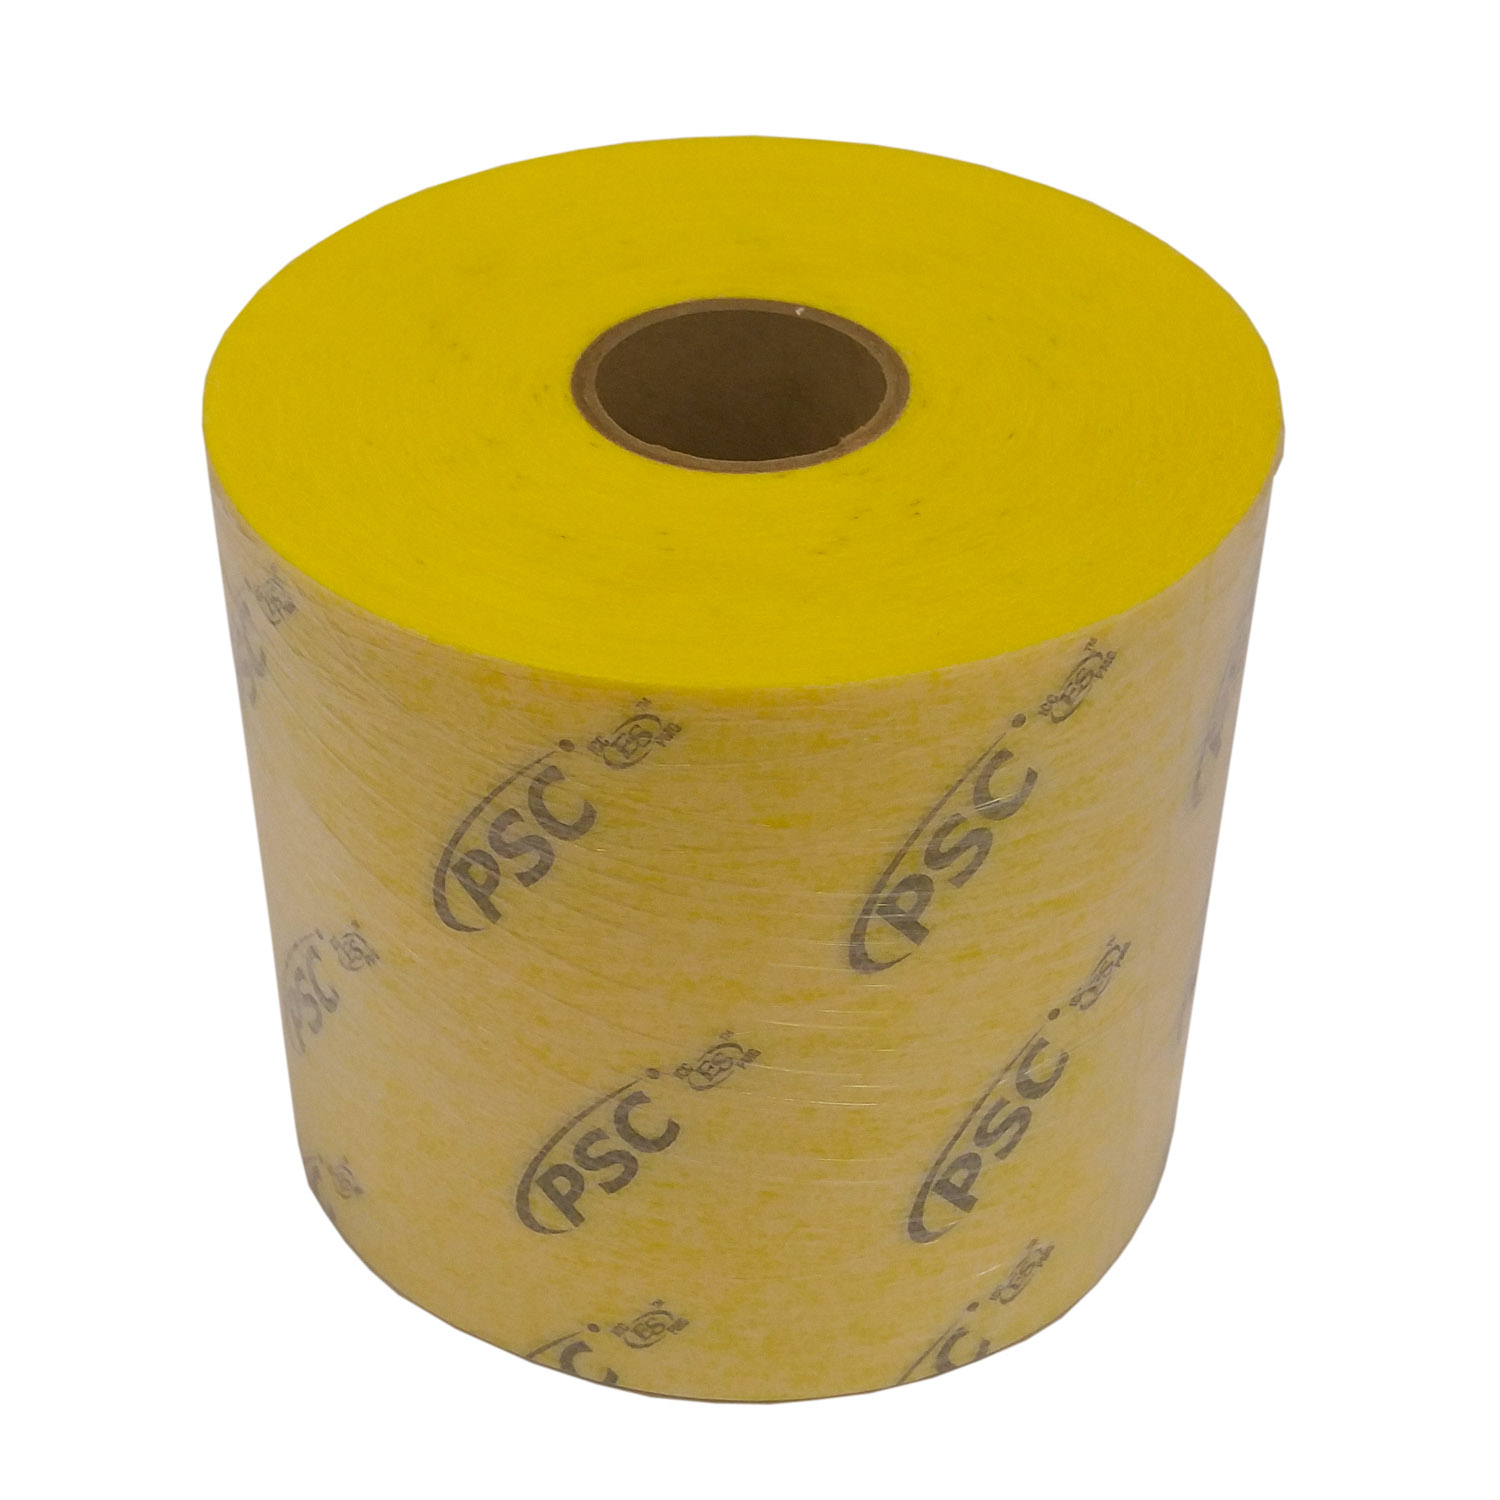 PSC Pro WP Waterproofing Seam Strips 5 Inch 98 5 Foot Roll by Pro-Source Center